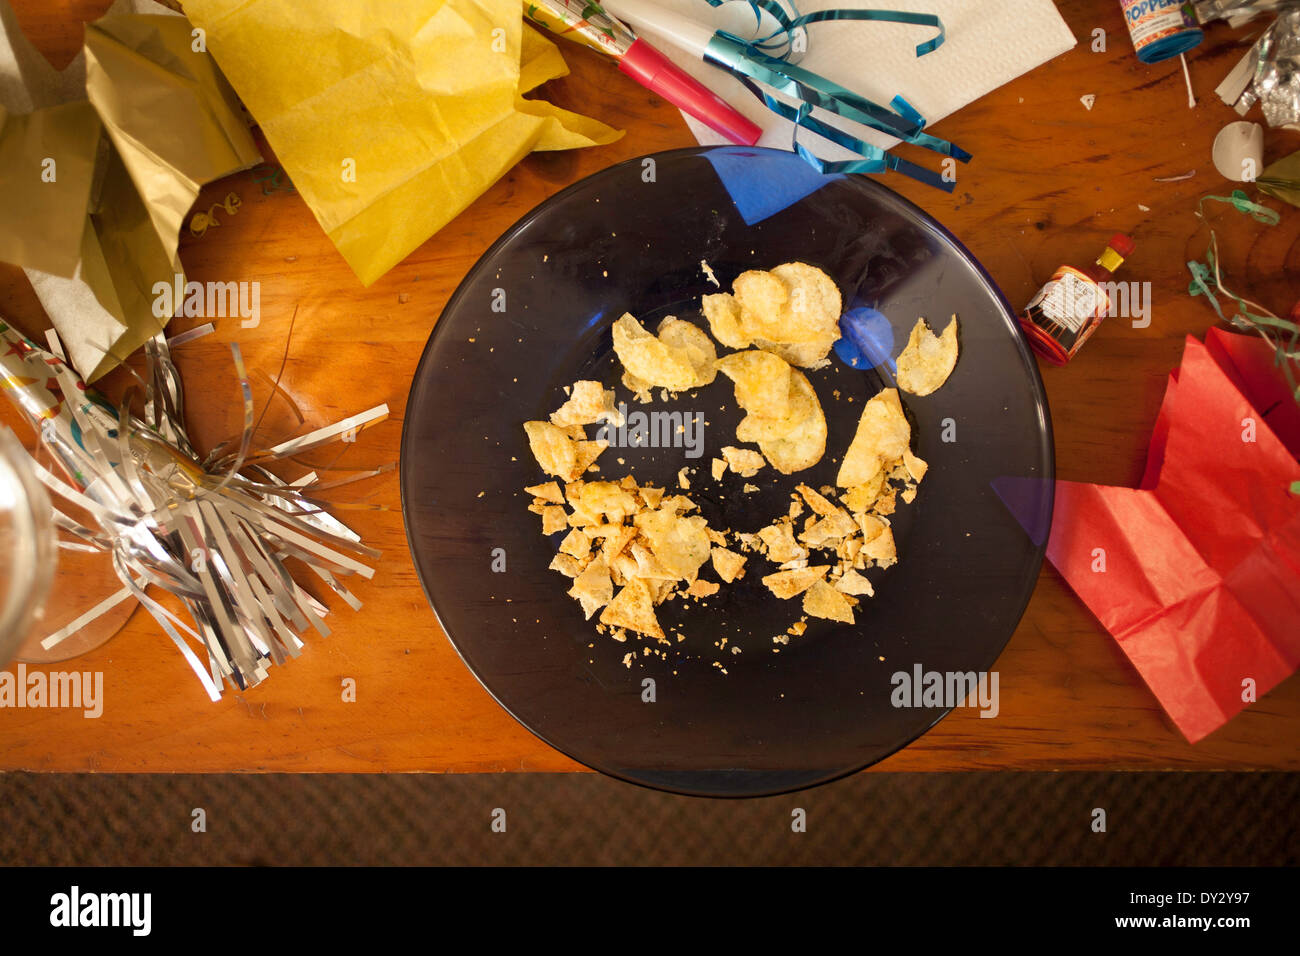 Aftermath of a New Year party, the morning after. - Stock Image